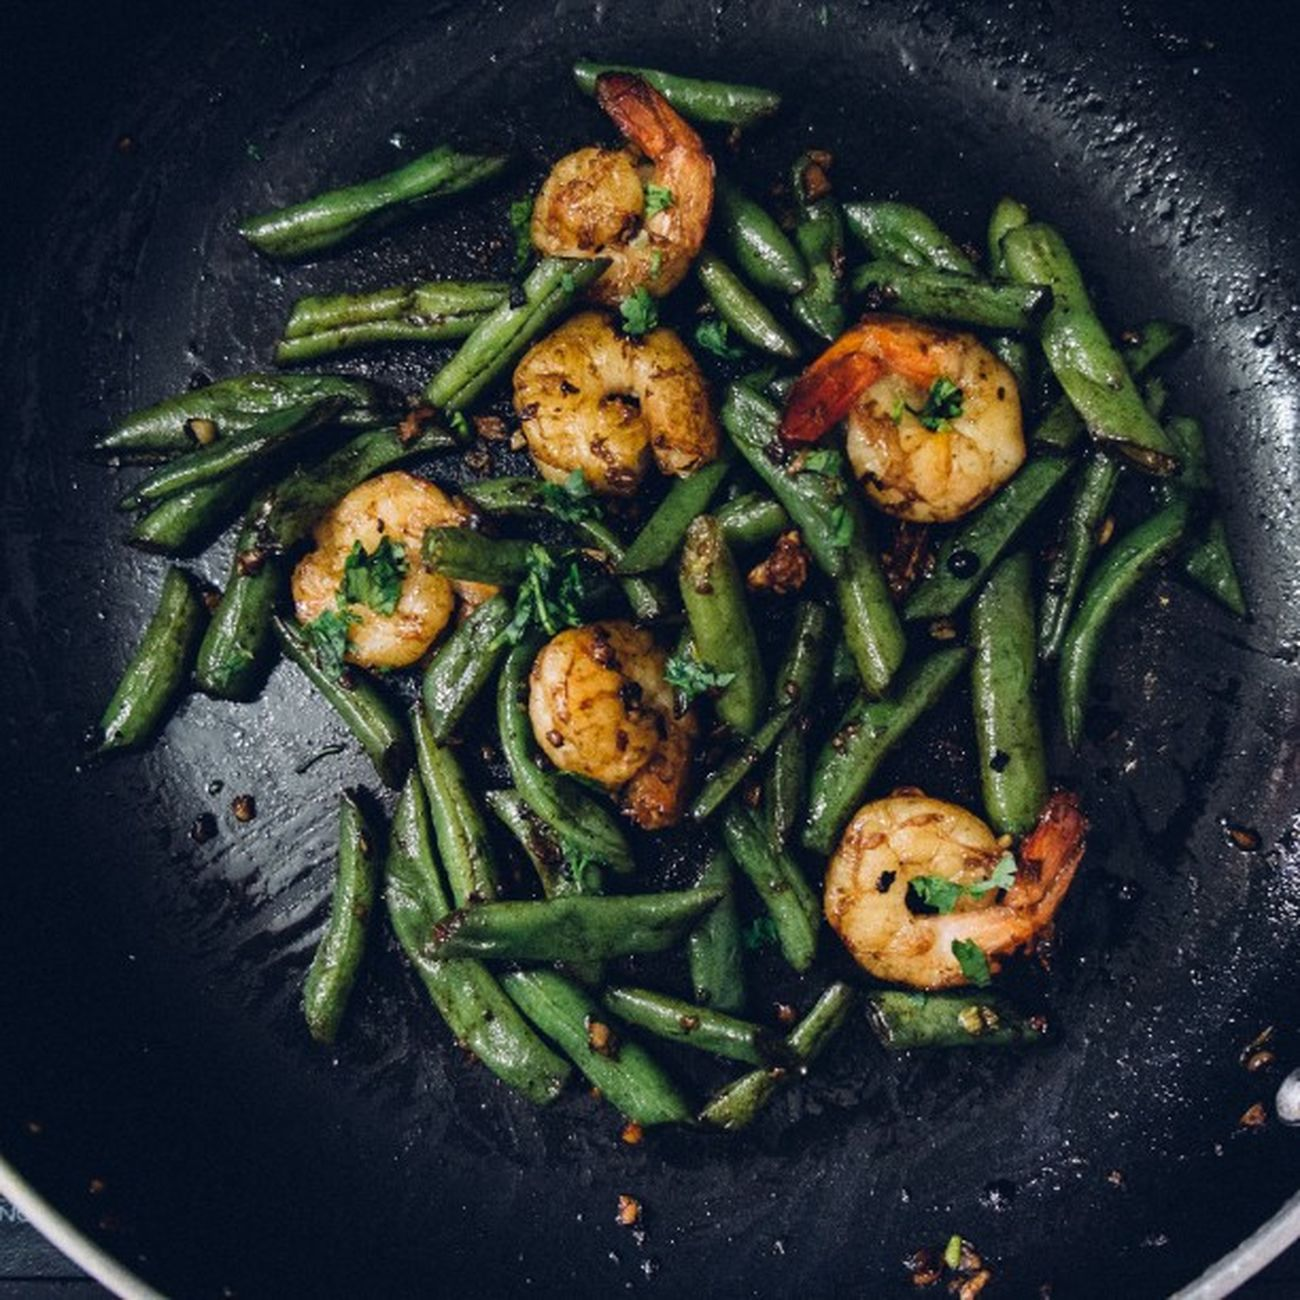 Butter pepper prawns and French beans a la @fayemonteiro Food Prawns Whatscooking Whatsfordinner Fujifilm Fuji Xe1